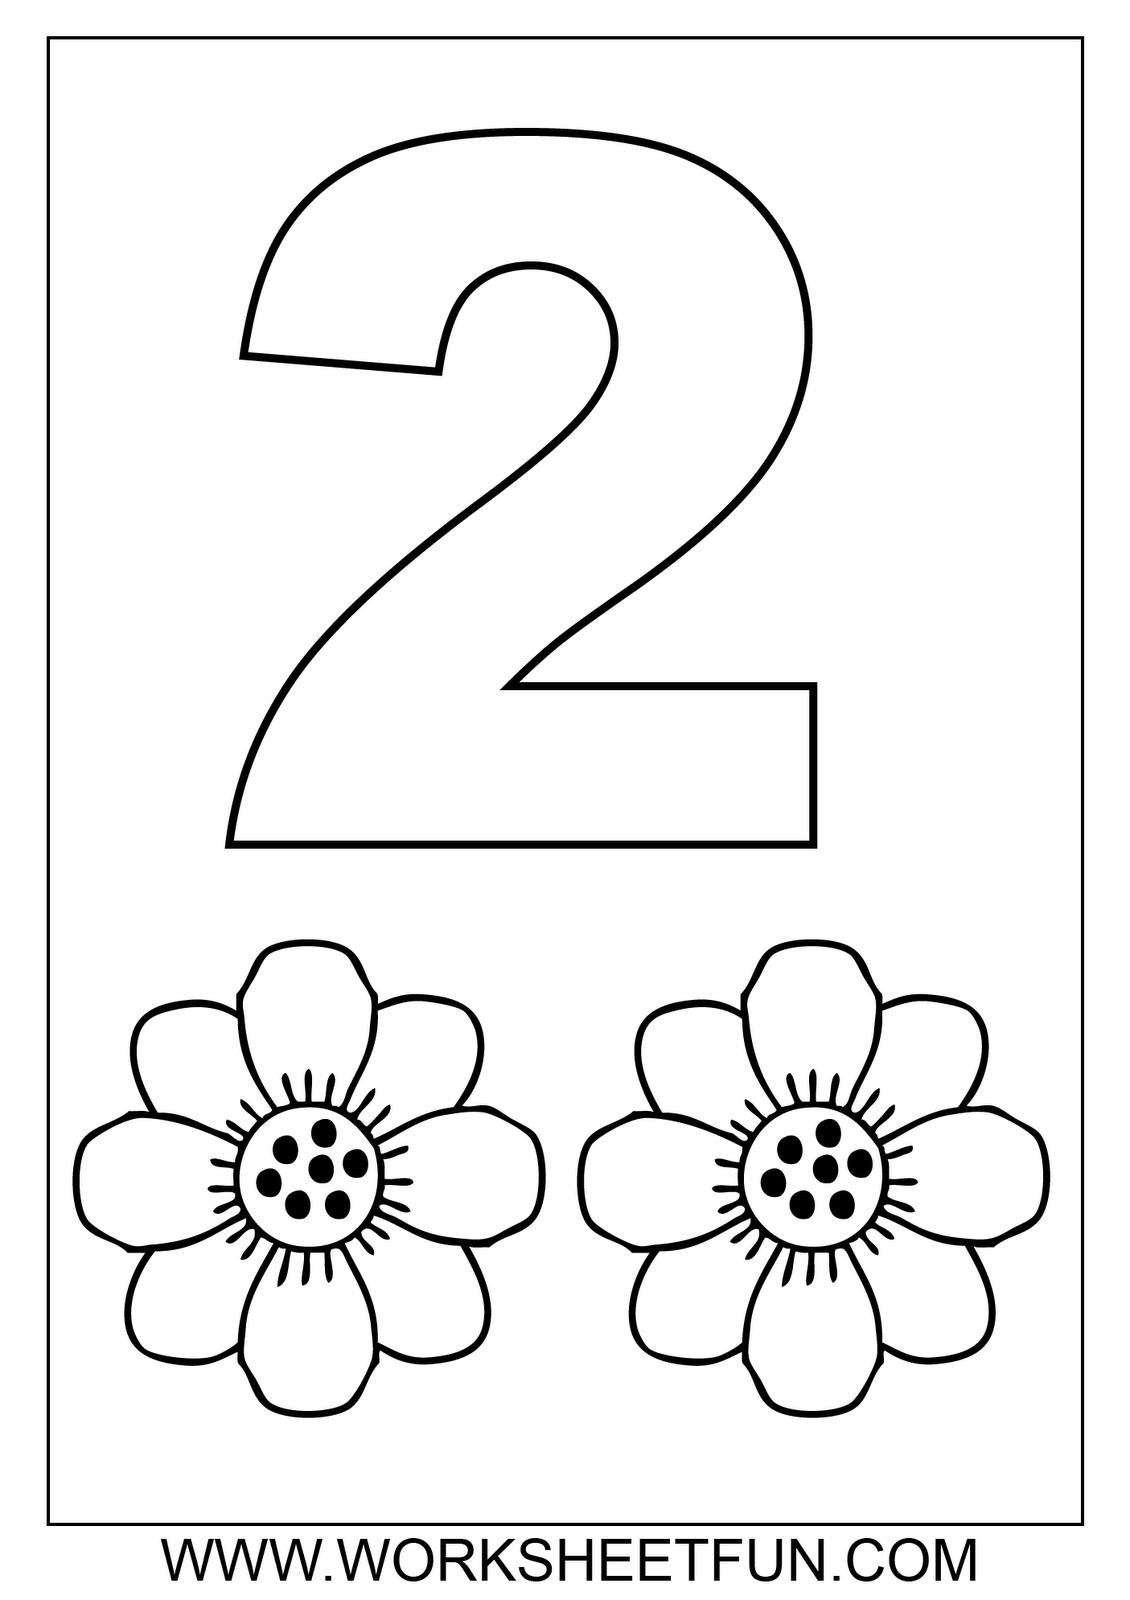 free math worksheets-number coloring | Numbers preschool ... | number coloring pages for kindergarten